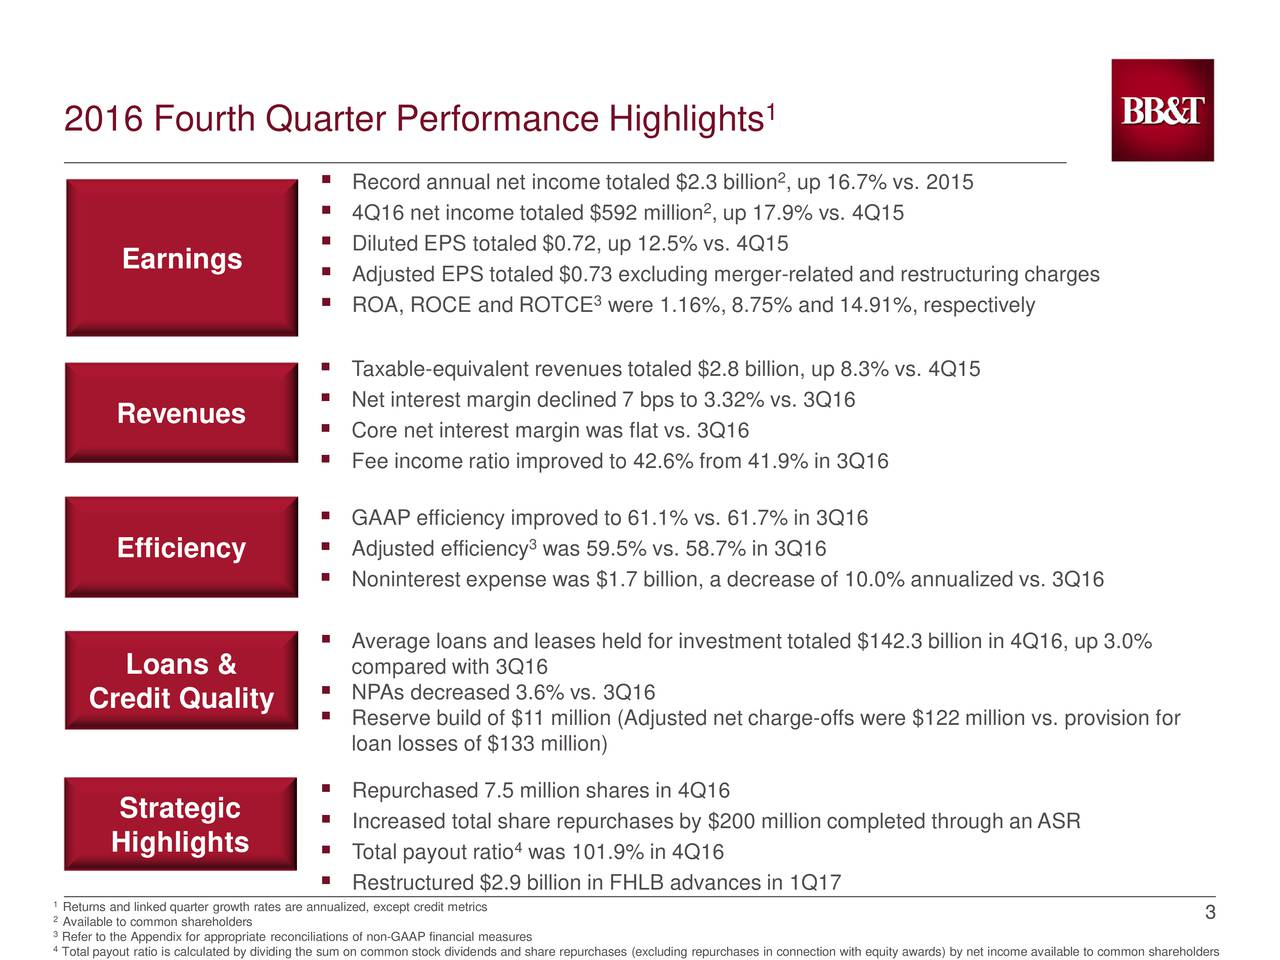 2016 Fourth Quarter Performance Highlights 2 Record annual net income totaled $2.3 billion , up 16.7% vs. 2015 4Q16 net income totaled $592 million , up 17.9% vs. 4Q15 Diluted EPS totaled $0.72, up 12.5% vs. 4Q15 Earnings Adjusted EPS totaled $0.73 excluding merger-related and restructuring charges ROA, ROCE and ROTCE were 1.16%, 8.75% and 14.91%, respectively Taxable-equivalent revenues totaled $2.8 billion, up 8.3% vs. 4Q15 Revenues  Net interest margin declined 7 bps to 3.32% vs. 3Q16 Core net interest margin was flat vs. 3Q16 Fee income ratio improved to 42.6% from 41.9% in 3Q16 GAAP efficiency improved to 61.1% vs. 61.7% in 3Q16 Adjusted efficiency was 59.5% vs. 58.7% in 3Q16 Efficiency Noninterest expense was $1.7 billion, a decrease of 10.0% annualized vs. 3Q16 Average loans and leases held for investment totaled $142.3 billion in 4Q16, up 3.0% Loans & compared with 3Q16 Credit Quality  NPAs decreased 3.6% vs. 3Q16 Reserve build of $11 million (Adjusted net charge-offs were $122 million vs. provision for loan losses of $133 million) Strategic  Repurchased 7.5 million shares in 4Q16 Increased total share repurchases by $200 million completed through an ASR Highlights  Total payout ratio was 101.9% in 4Q16 Restructured $2.9 billion in FHLB advances in 1Q17 2Available to common shareholdersh rates are annualized, except credit metrics 3 3Refer to the Appendix for appropriate reconciliations of non-GAAP financial measures